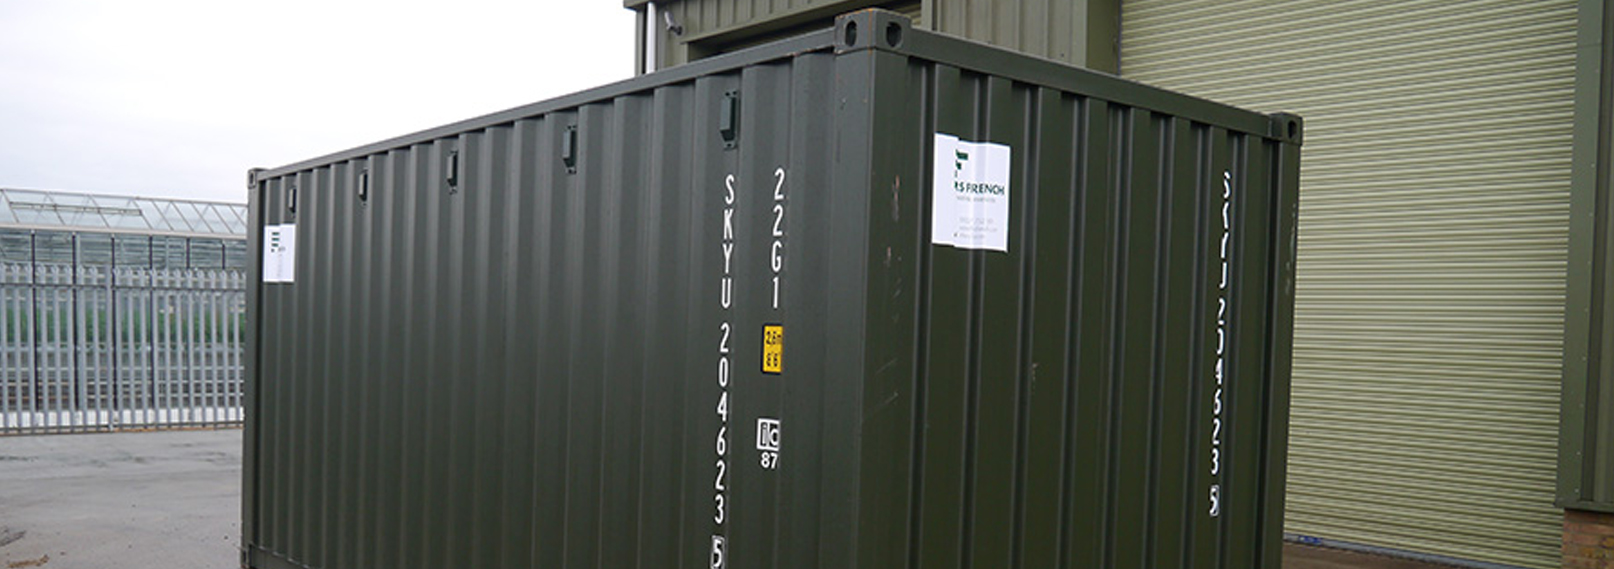 container for hire in kent